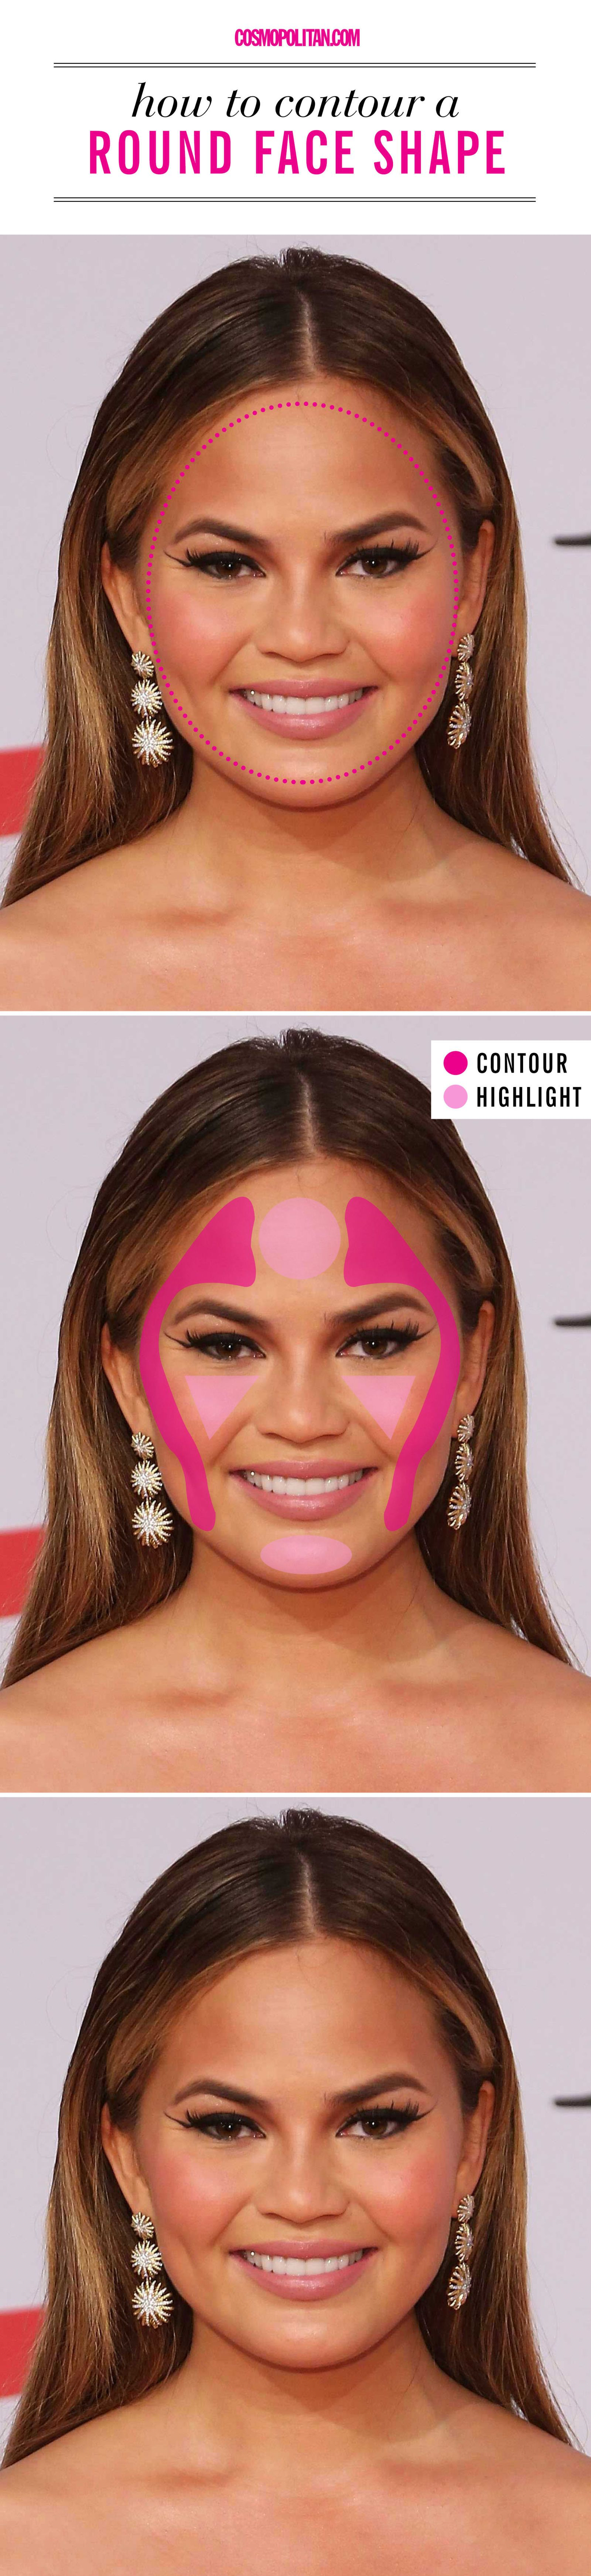 How To Contour If You Have A Round Face Shape